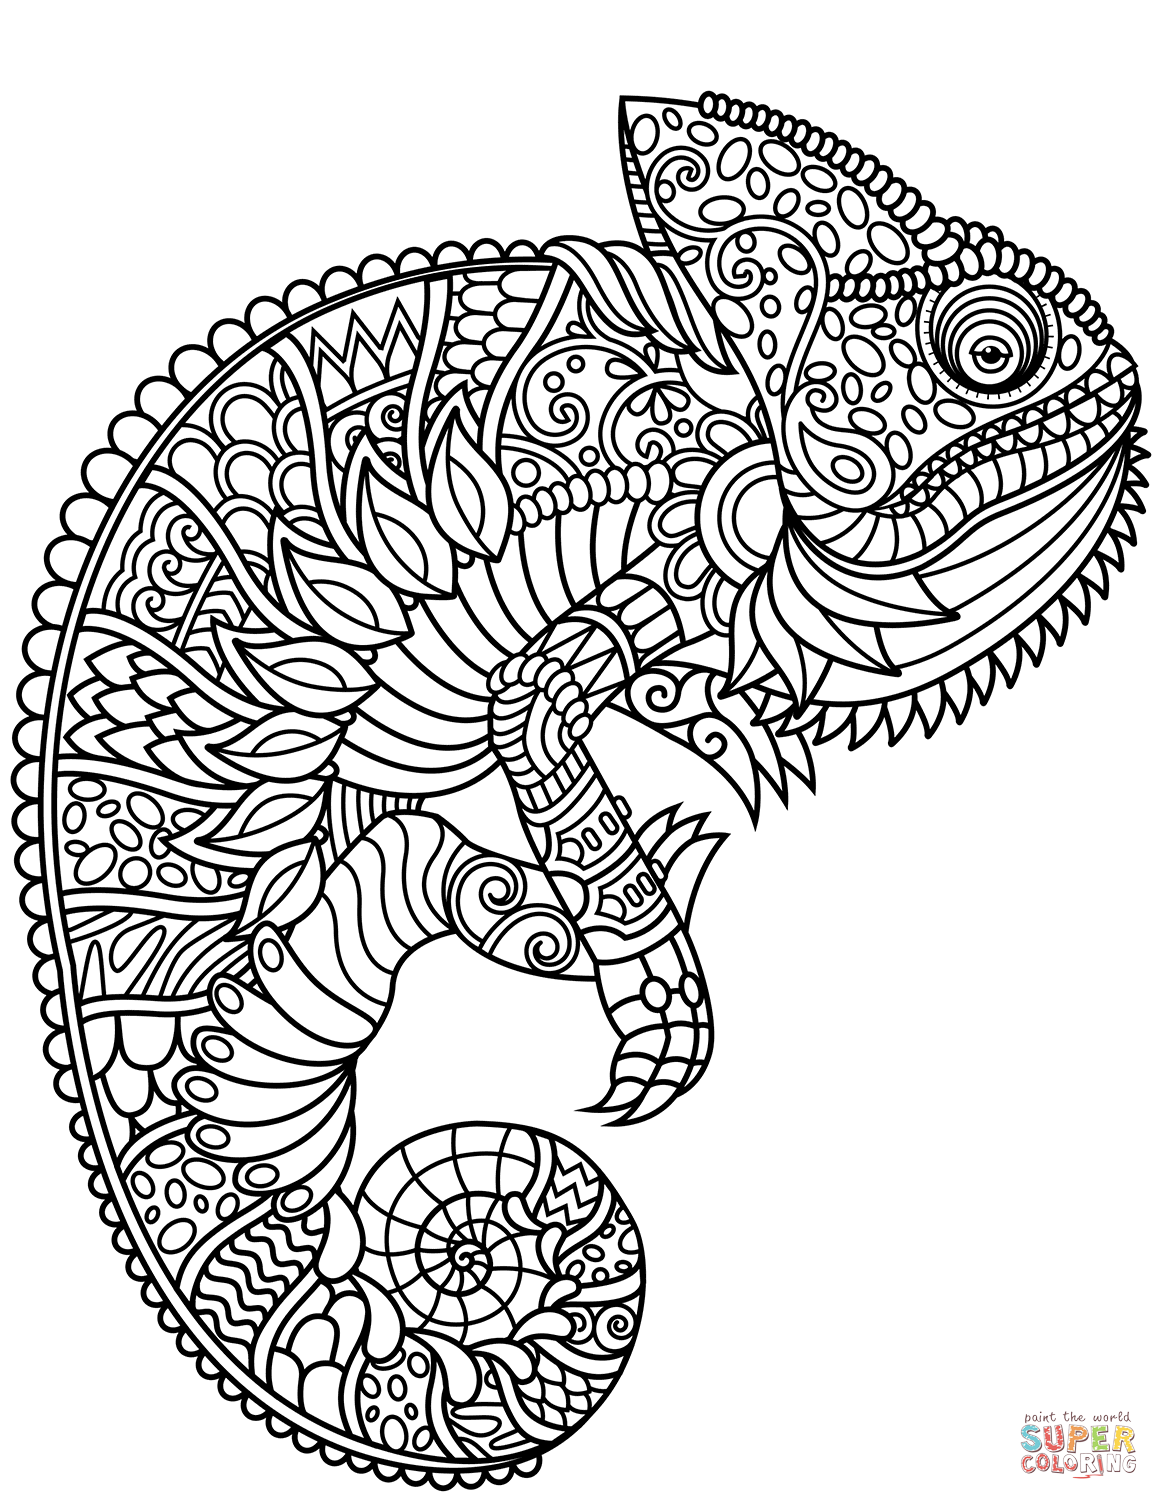 zentangle coloring pages free printable free printable zentangle coloring pages to print free printable zentangle pages coloring free